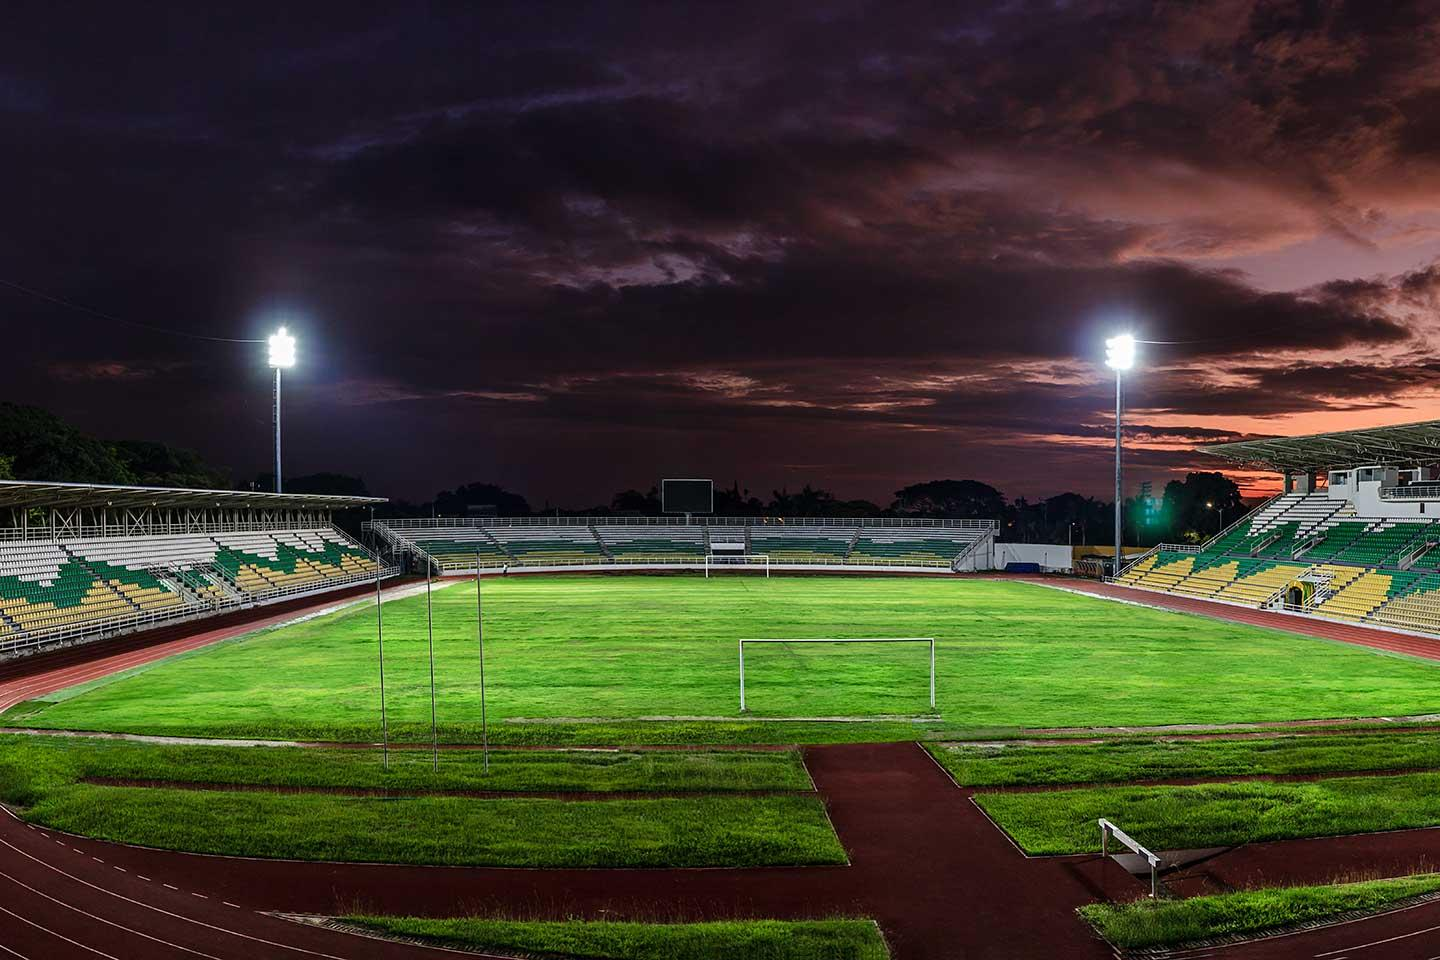 Energy efficient sports lighting solution improves quality of light at Francisco Rivera Escobar Stadium while reducing costs